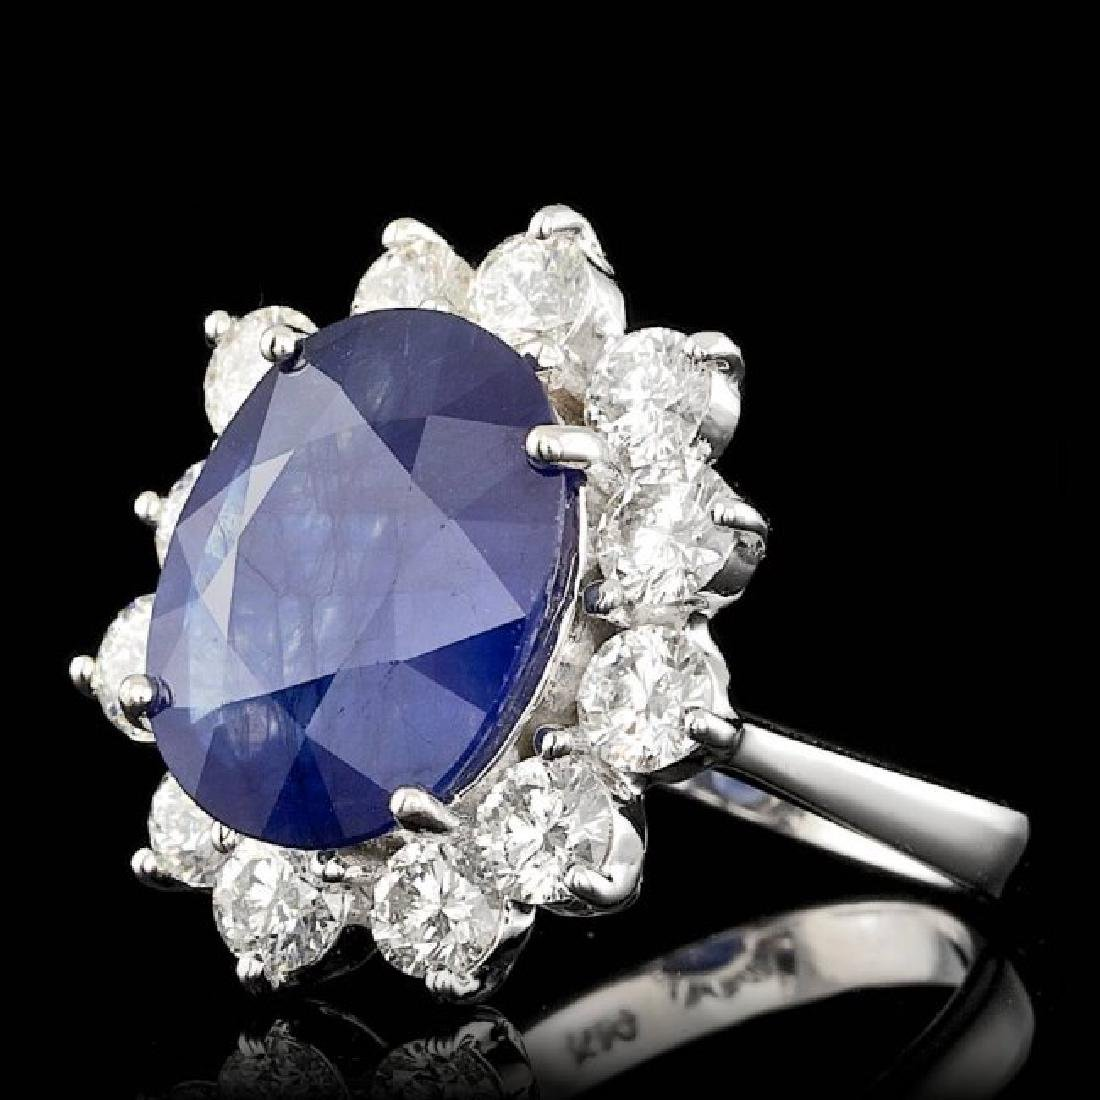 14k Gold 8.50ct Sapphire 2.50ct Diamond Ring - 2